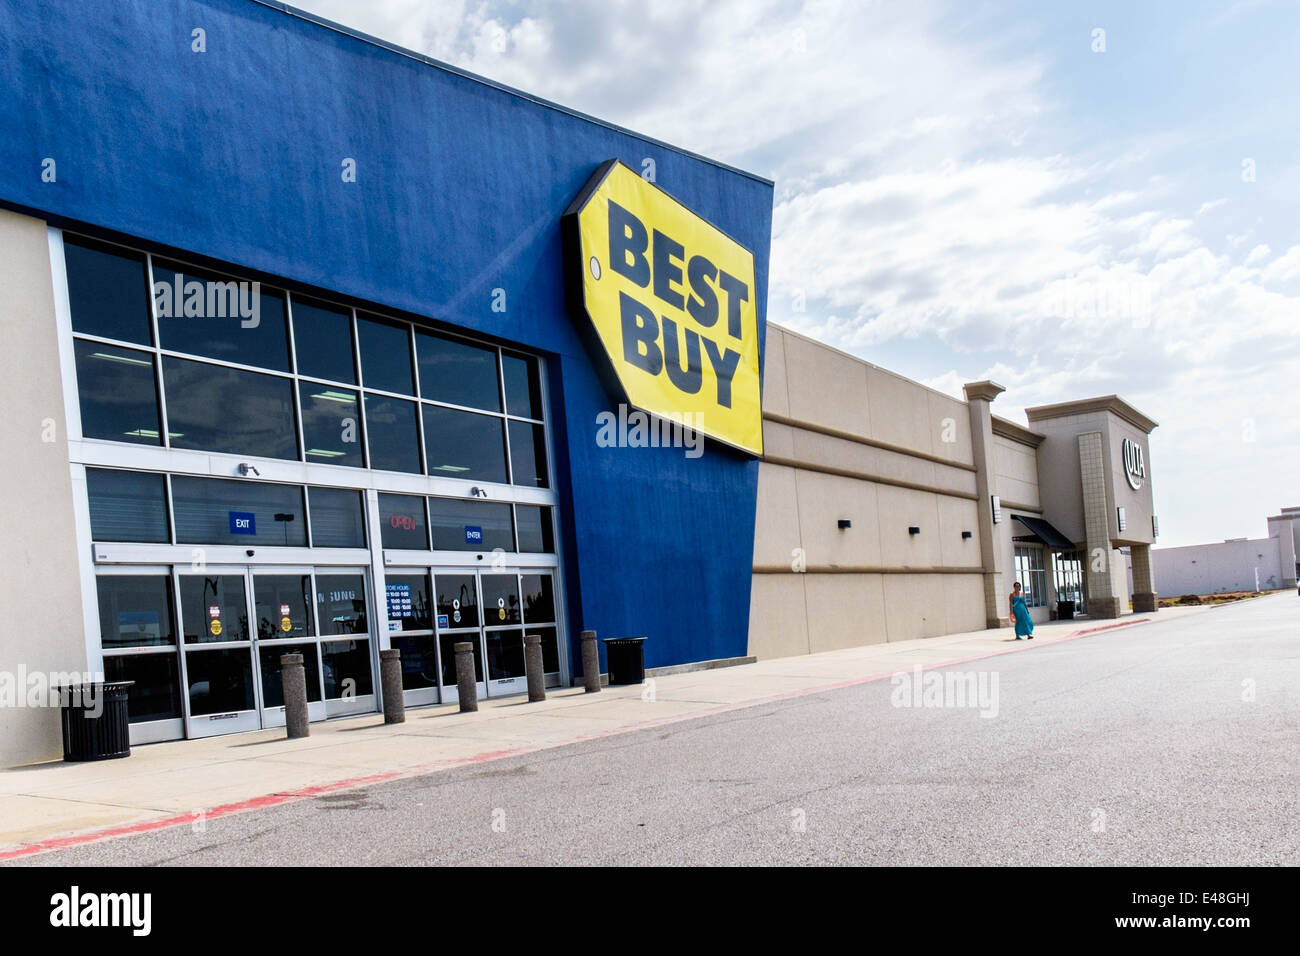 The Exterior Of Best Buy, A Chain Electronics Store In